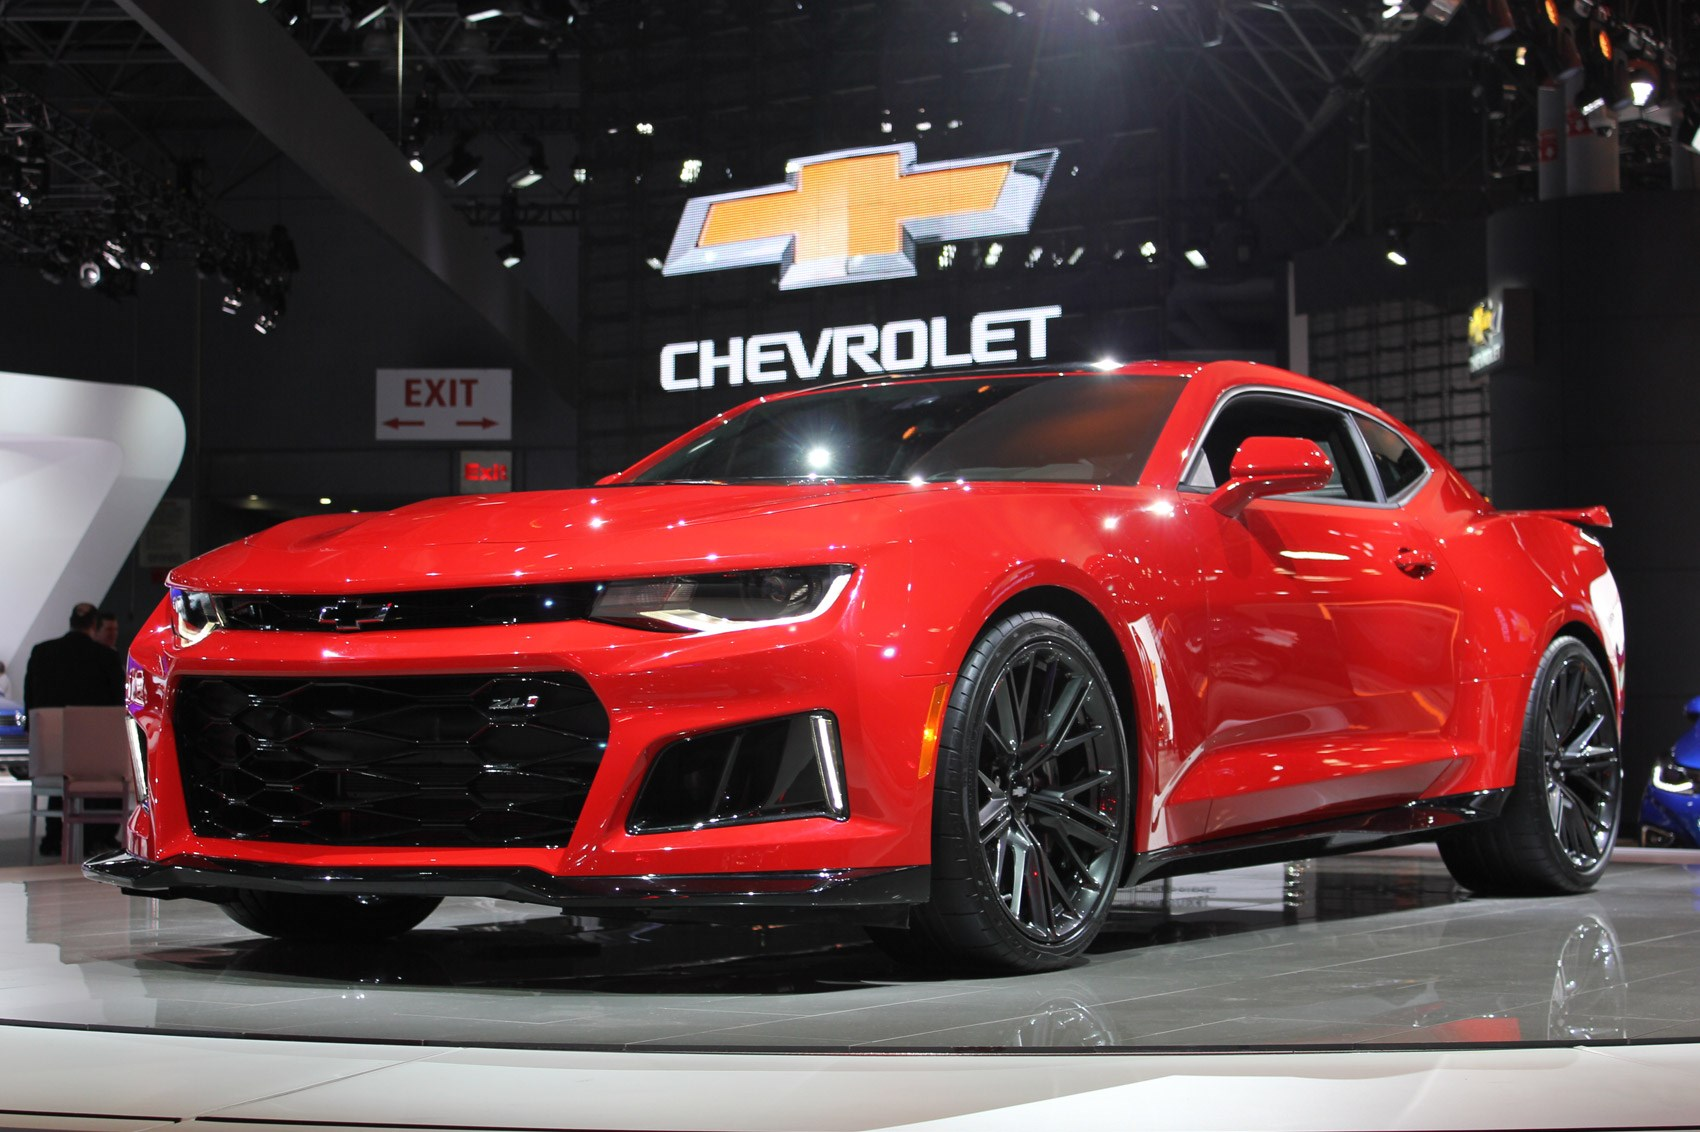 It S Time To Kick And Chew Bubblegum New 640bhp Chevrolet Camaro Zl1 Revealed